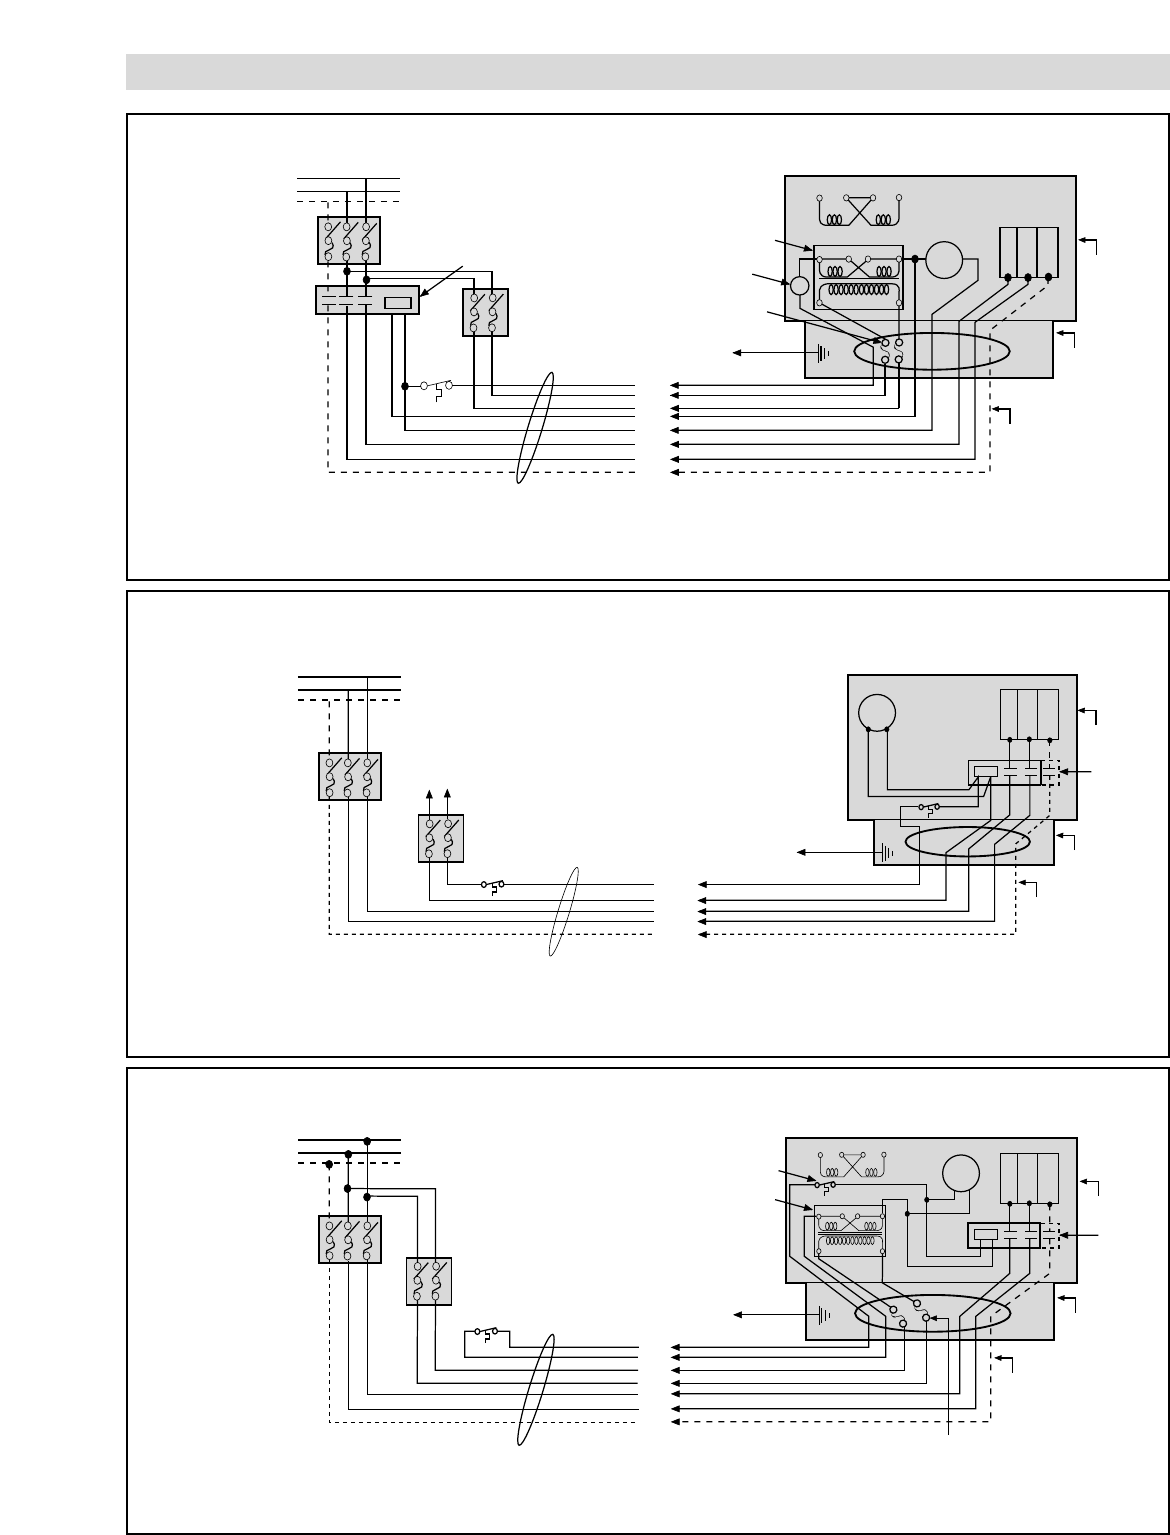 Page 3 of Chromalox Air Conditioner UB-1502E User Guide ... Diagram Chromalox Wiring Heater Ub on heater pump diagram, heater radiator, thermo king reefer unit diagram, voltage regulator diagram, heater control diagram, heater coil diagram, heater thermostat diagram, water heater installation diagram, heater hoses diagram, wiper motor diagram, home heating diagram, solar panel inverter circuit diagram, heater circuit diagram, thermo king tripac apu diagram, doorbell installation diagram, transmission diagram, reddy heater parts diagram, tankless water heater diagram, doorbell wire connection diagram, plc input and output diagram,